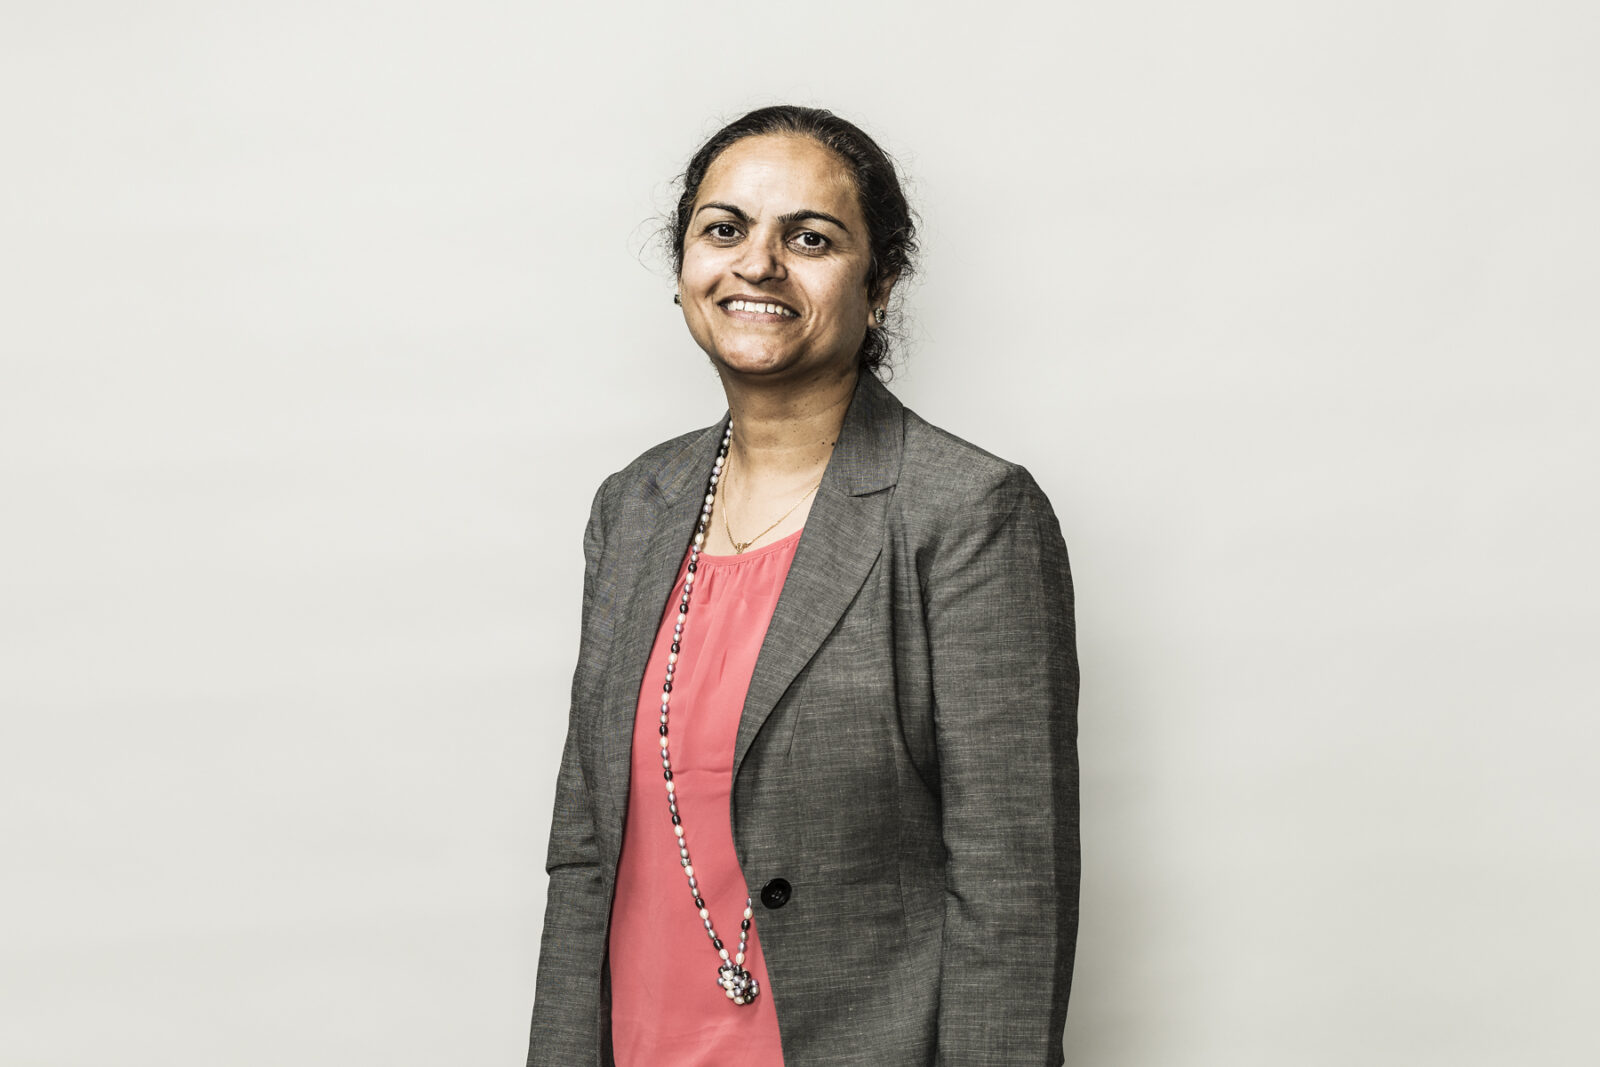 Headshot of professor Satinder Brar